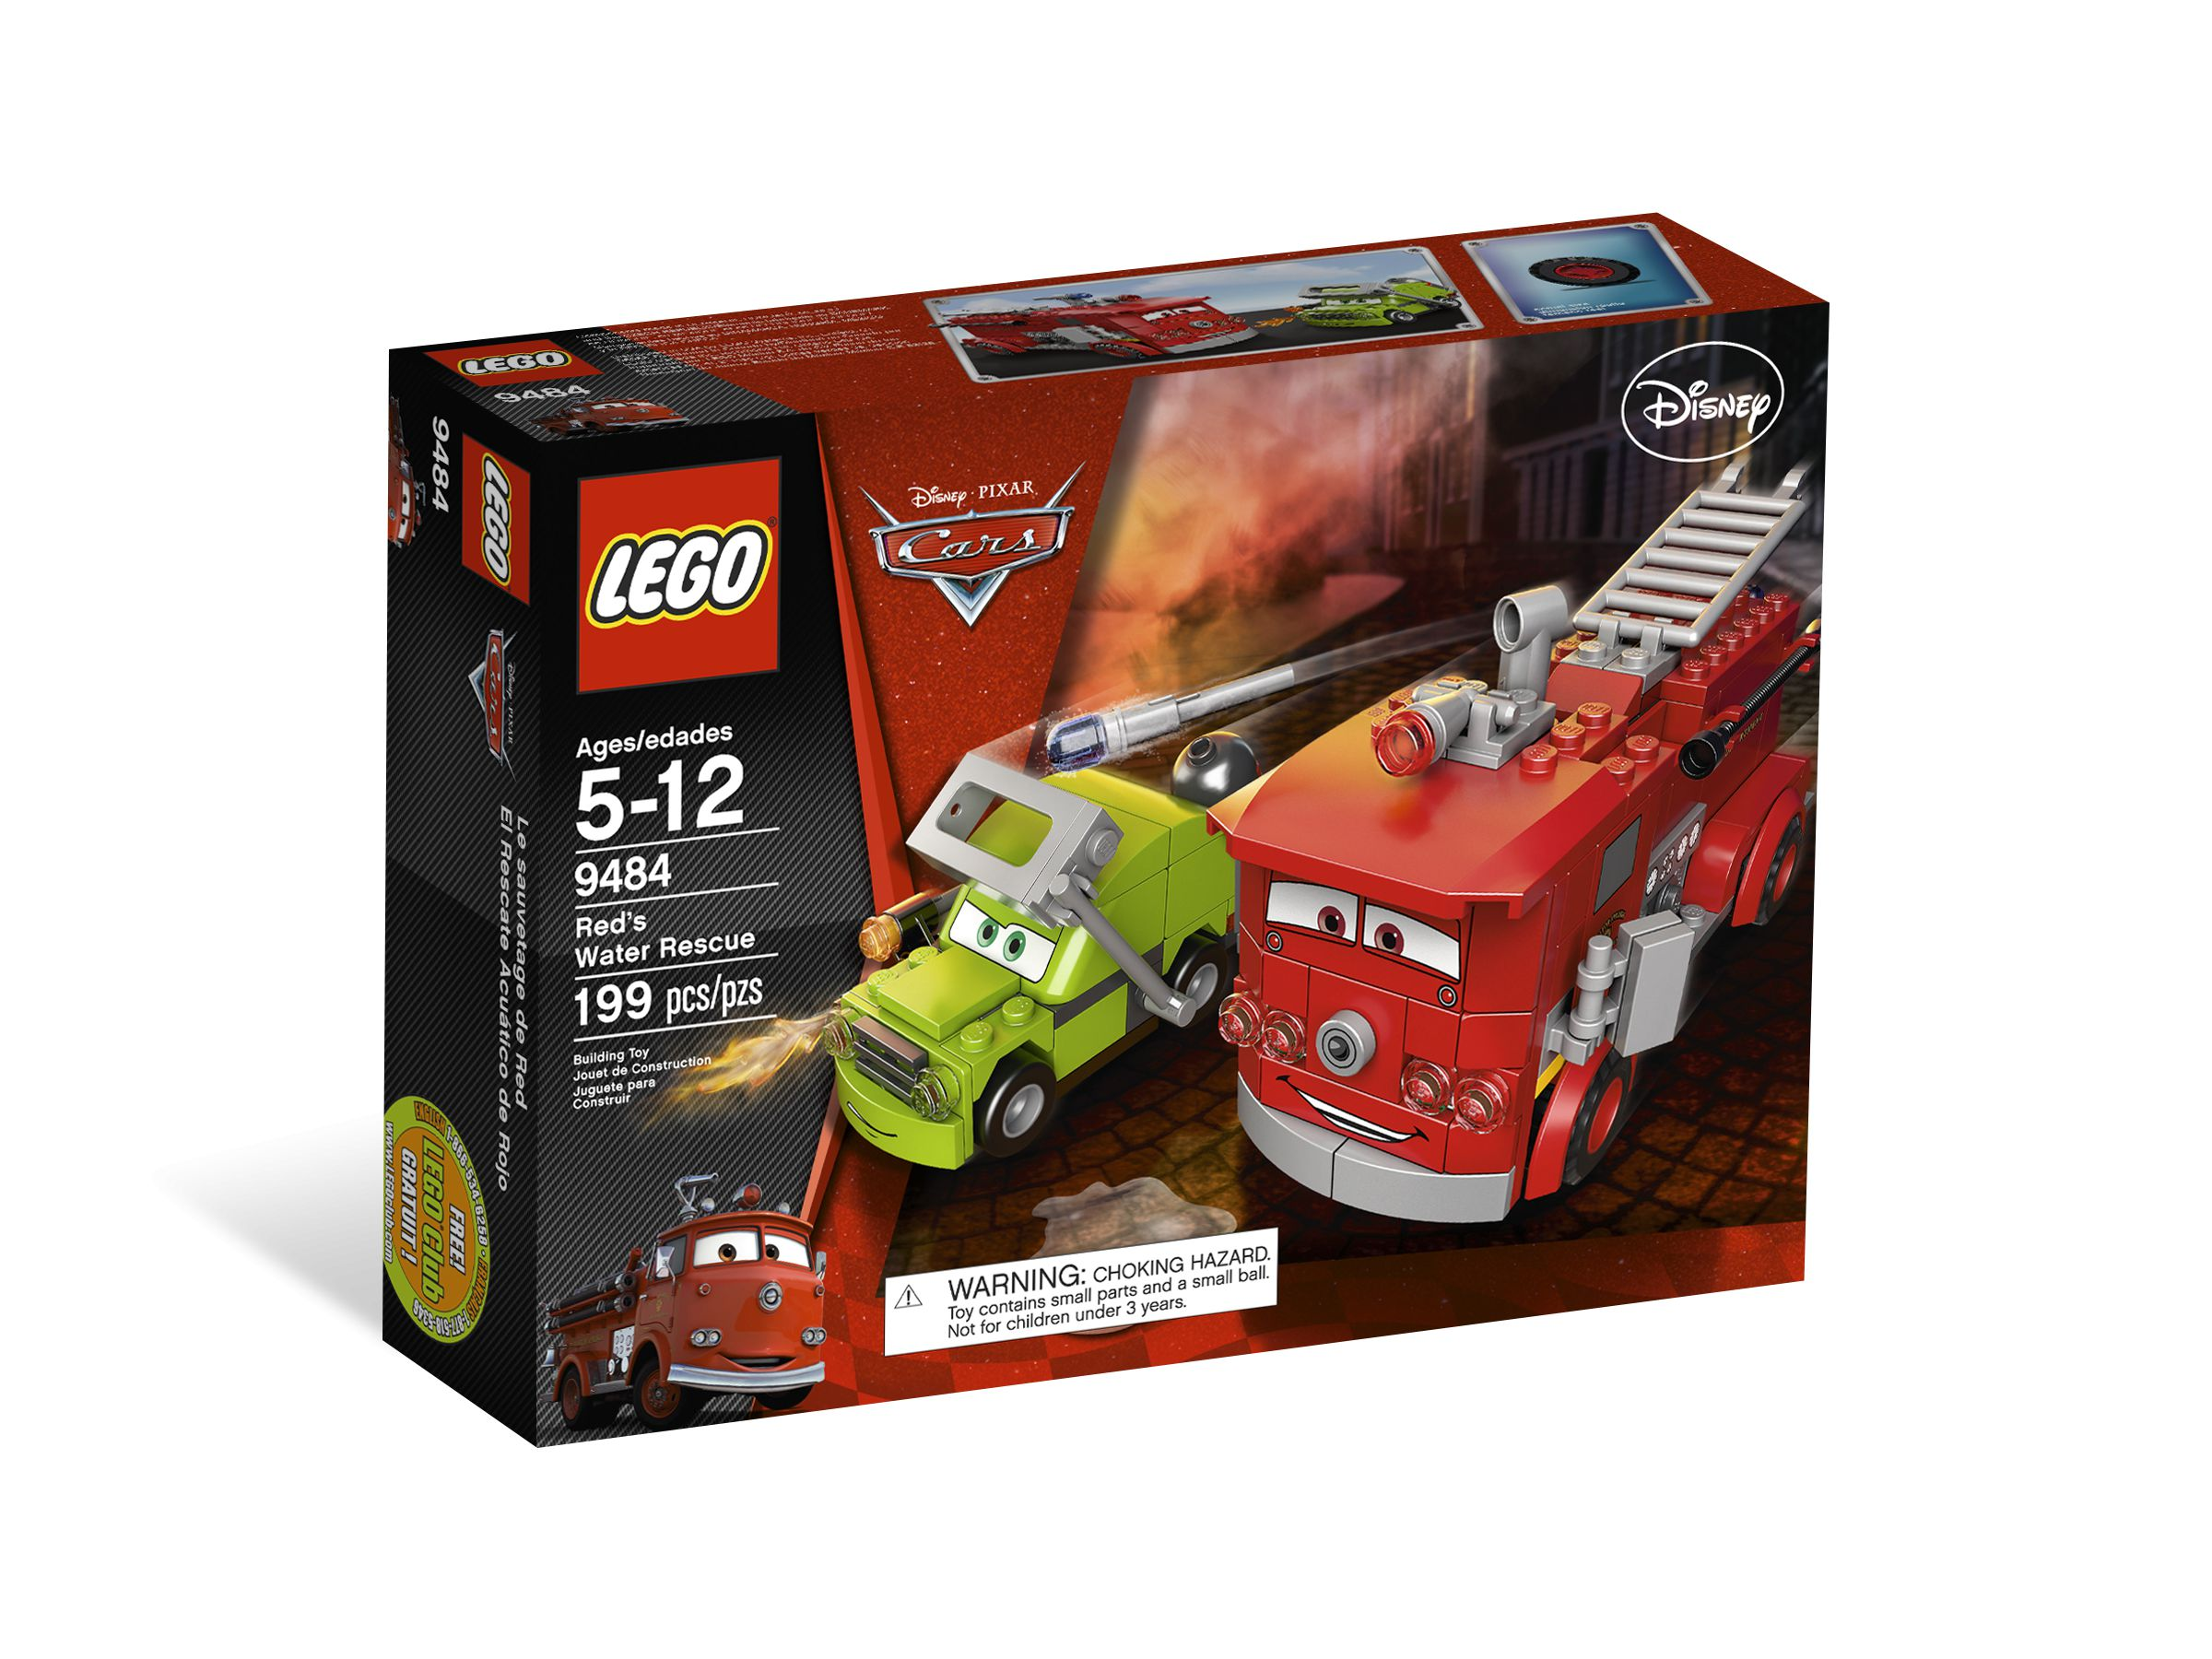 LEGO Cars 9484 Red's Water Rescue LEGO_9484_alt1.jpg